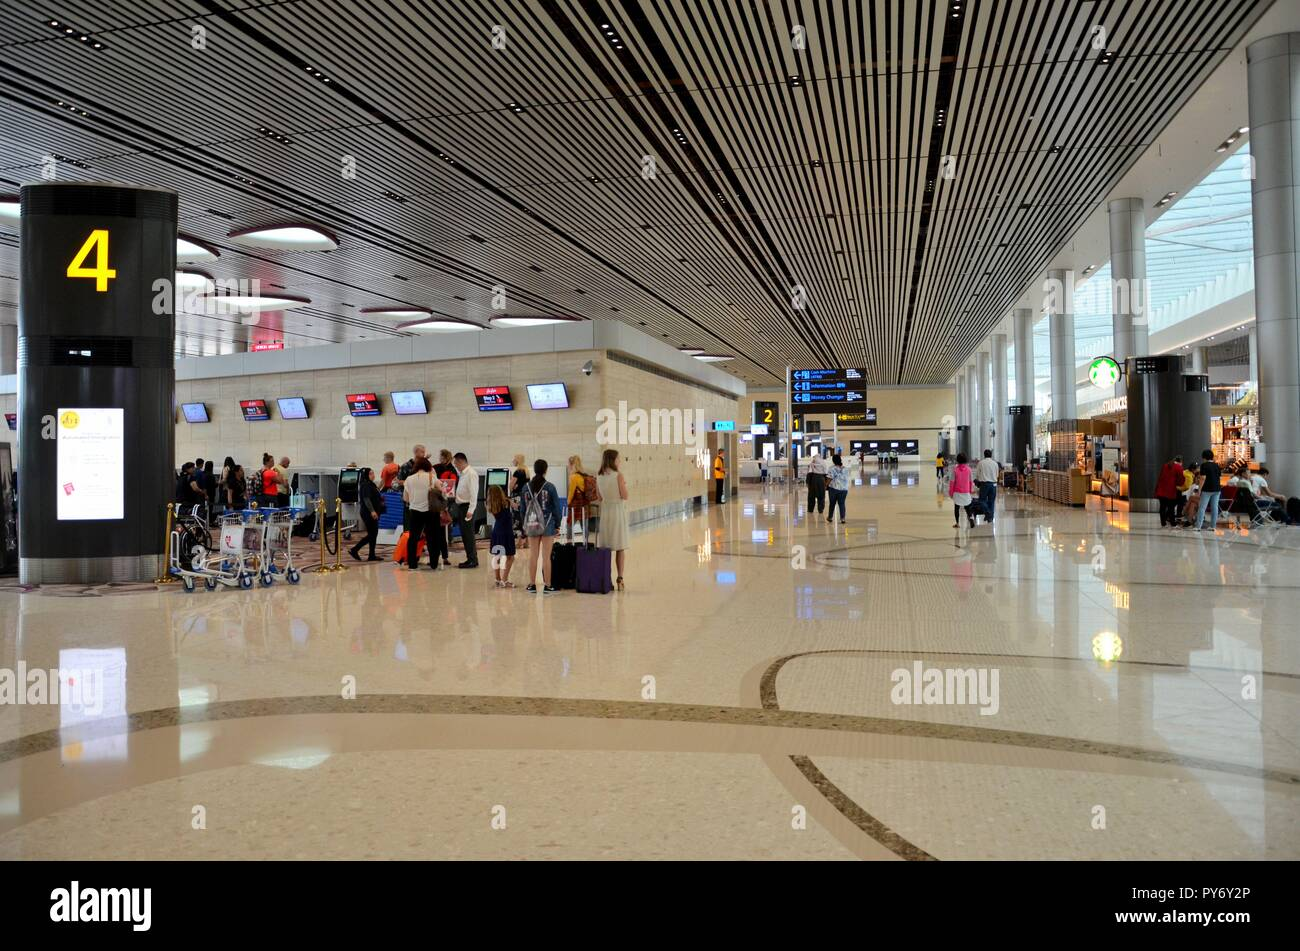 Passengers line up at self check in counters at Singapore Changi airport terminal 4 departures area - Stock Image